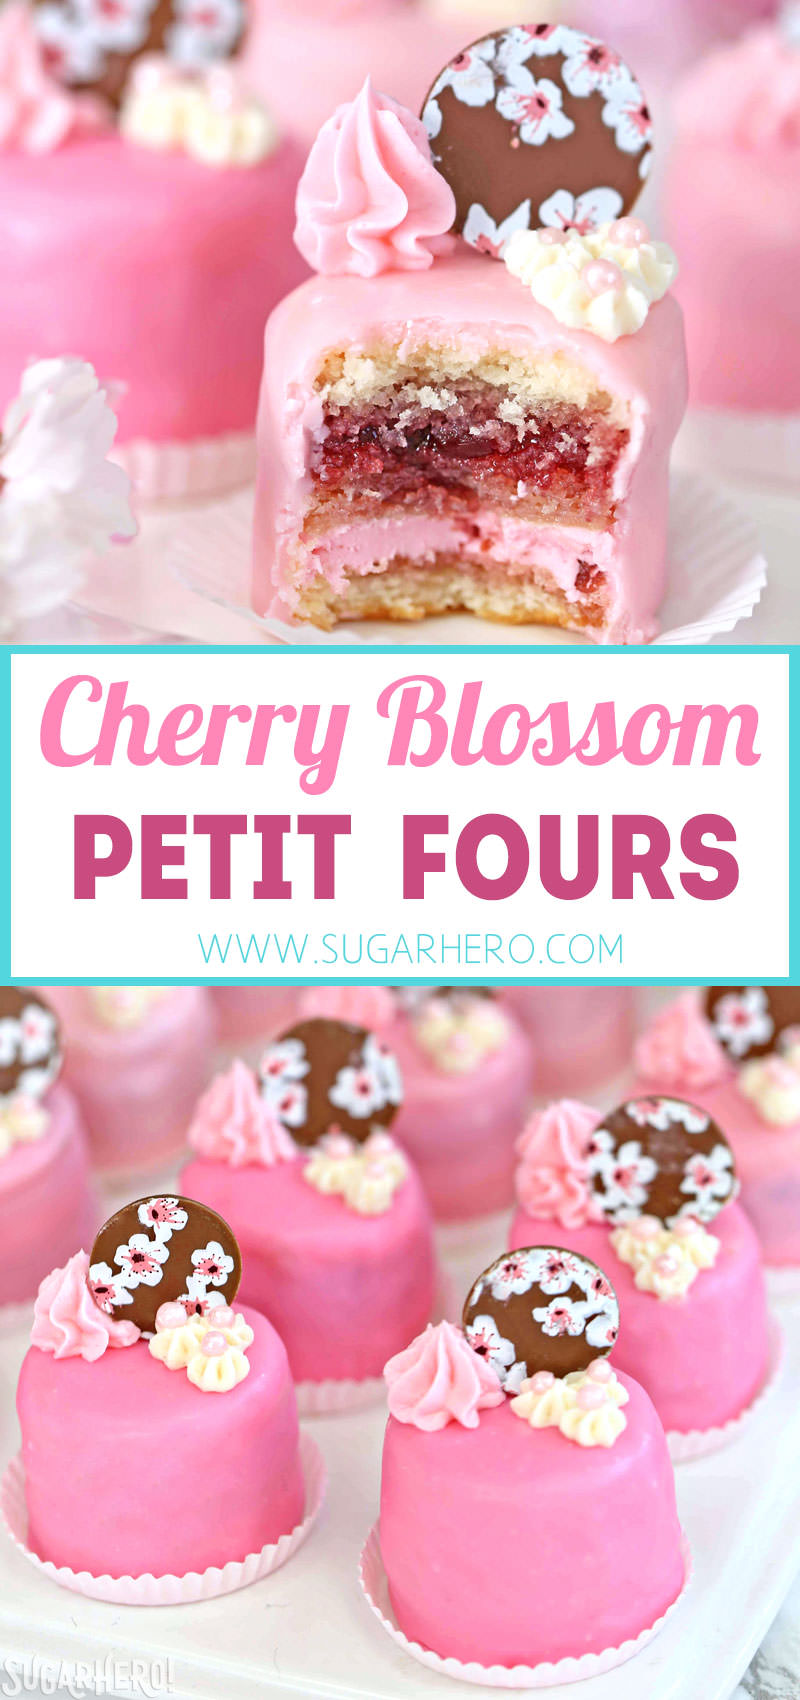 Cherry Blossom Petit Fours - cute little cake bites filled with cherry buttercream and jam! | From SugarHero.com